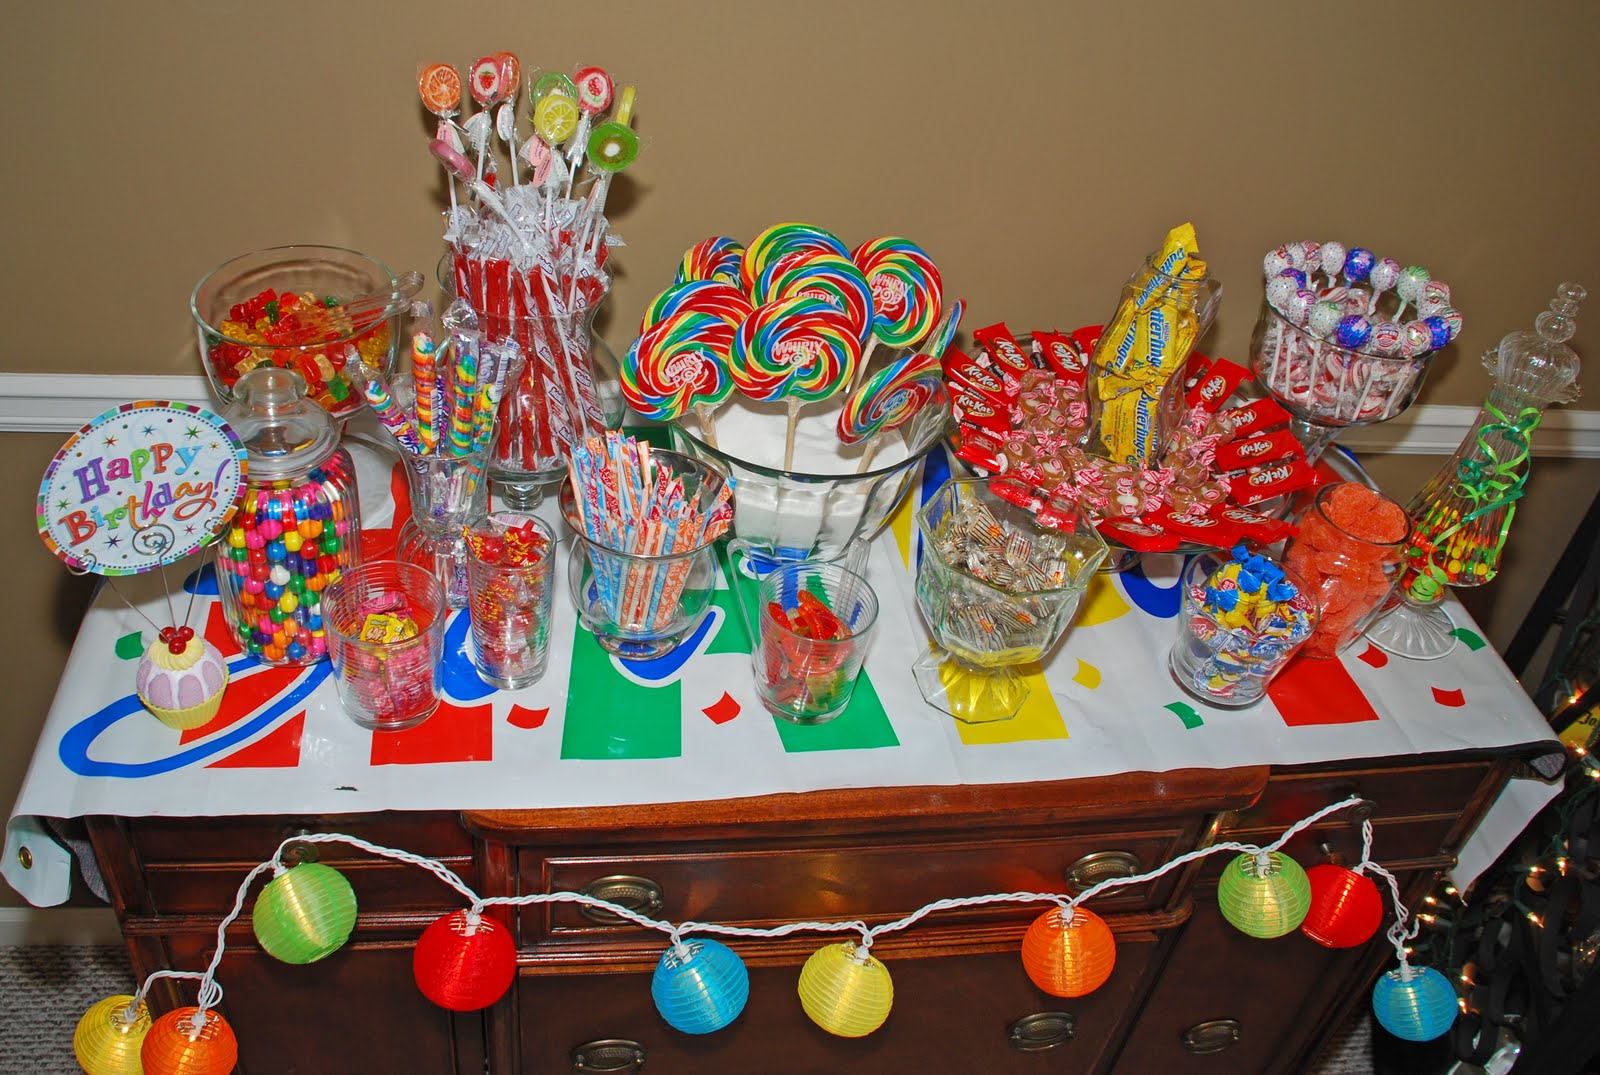 A Quest for a Balanced Life: Candy Buffet Anyone?